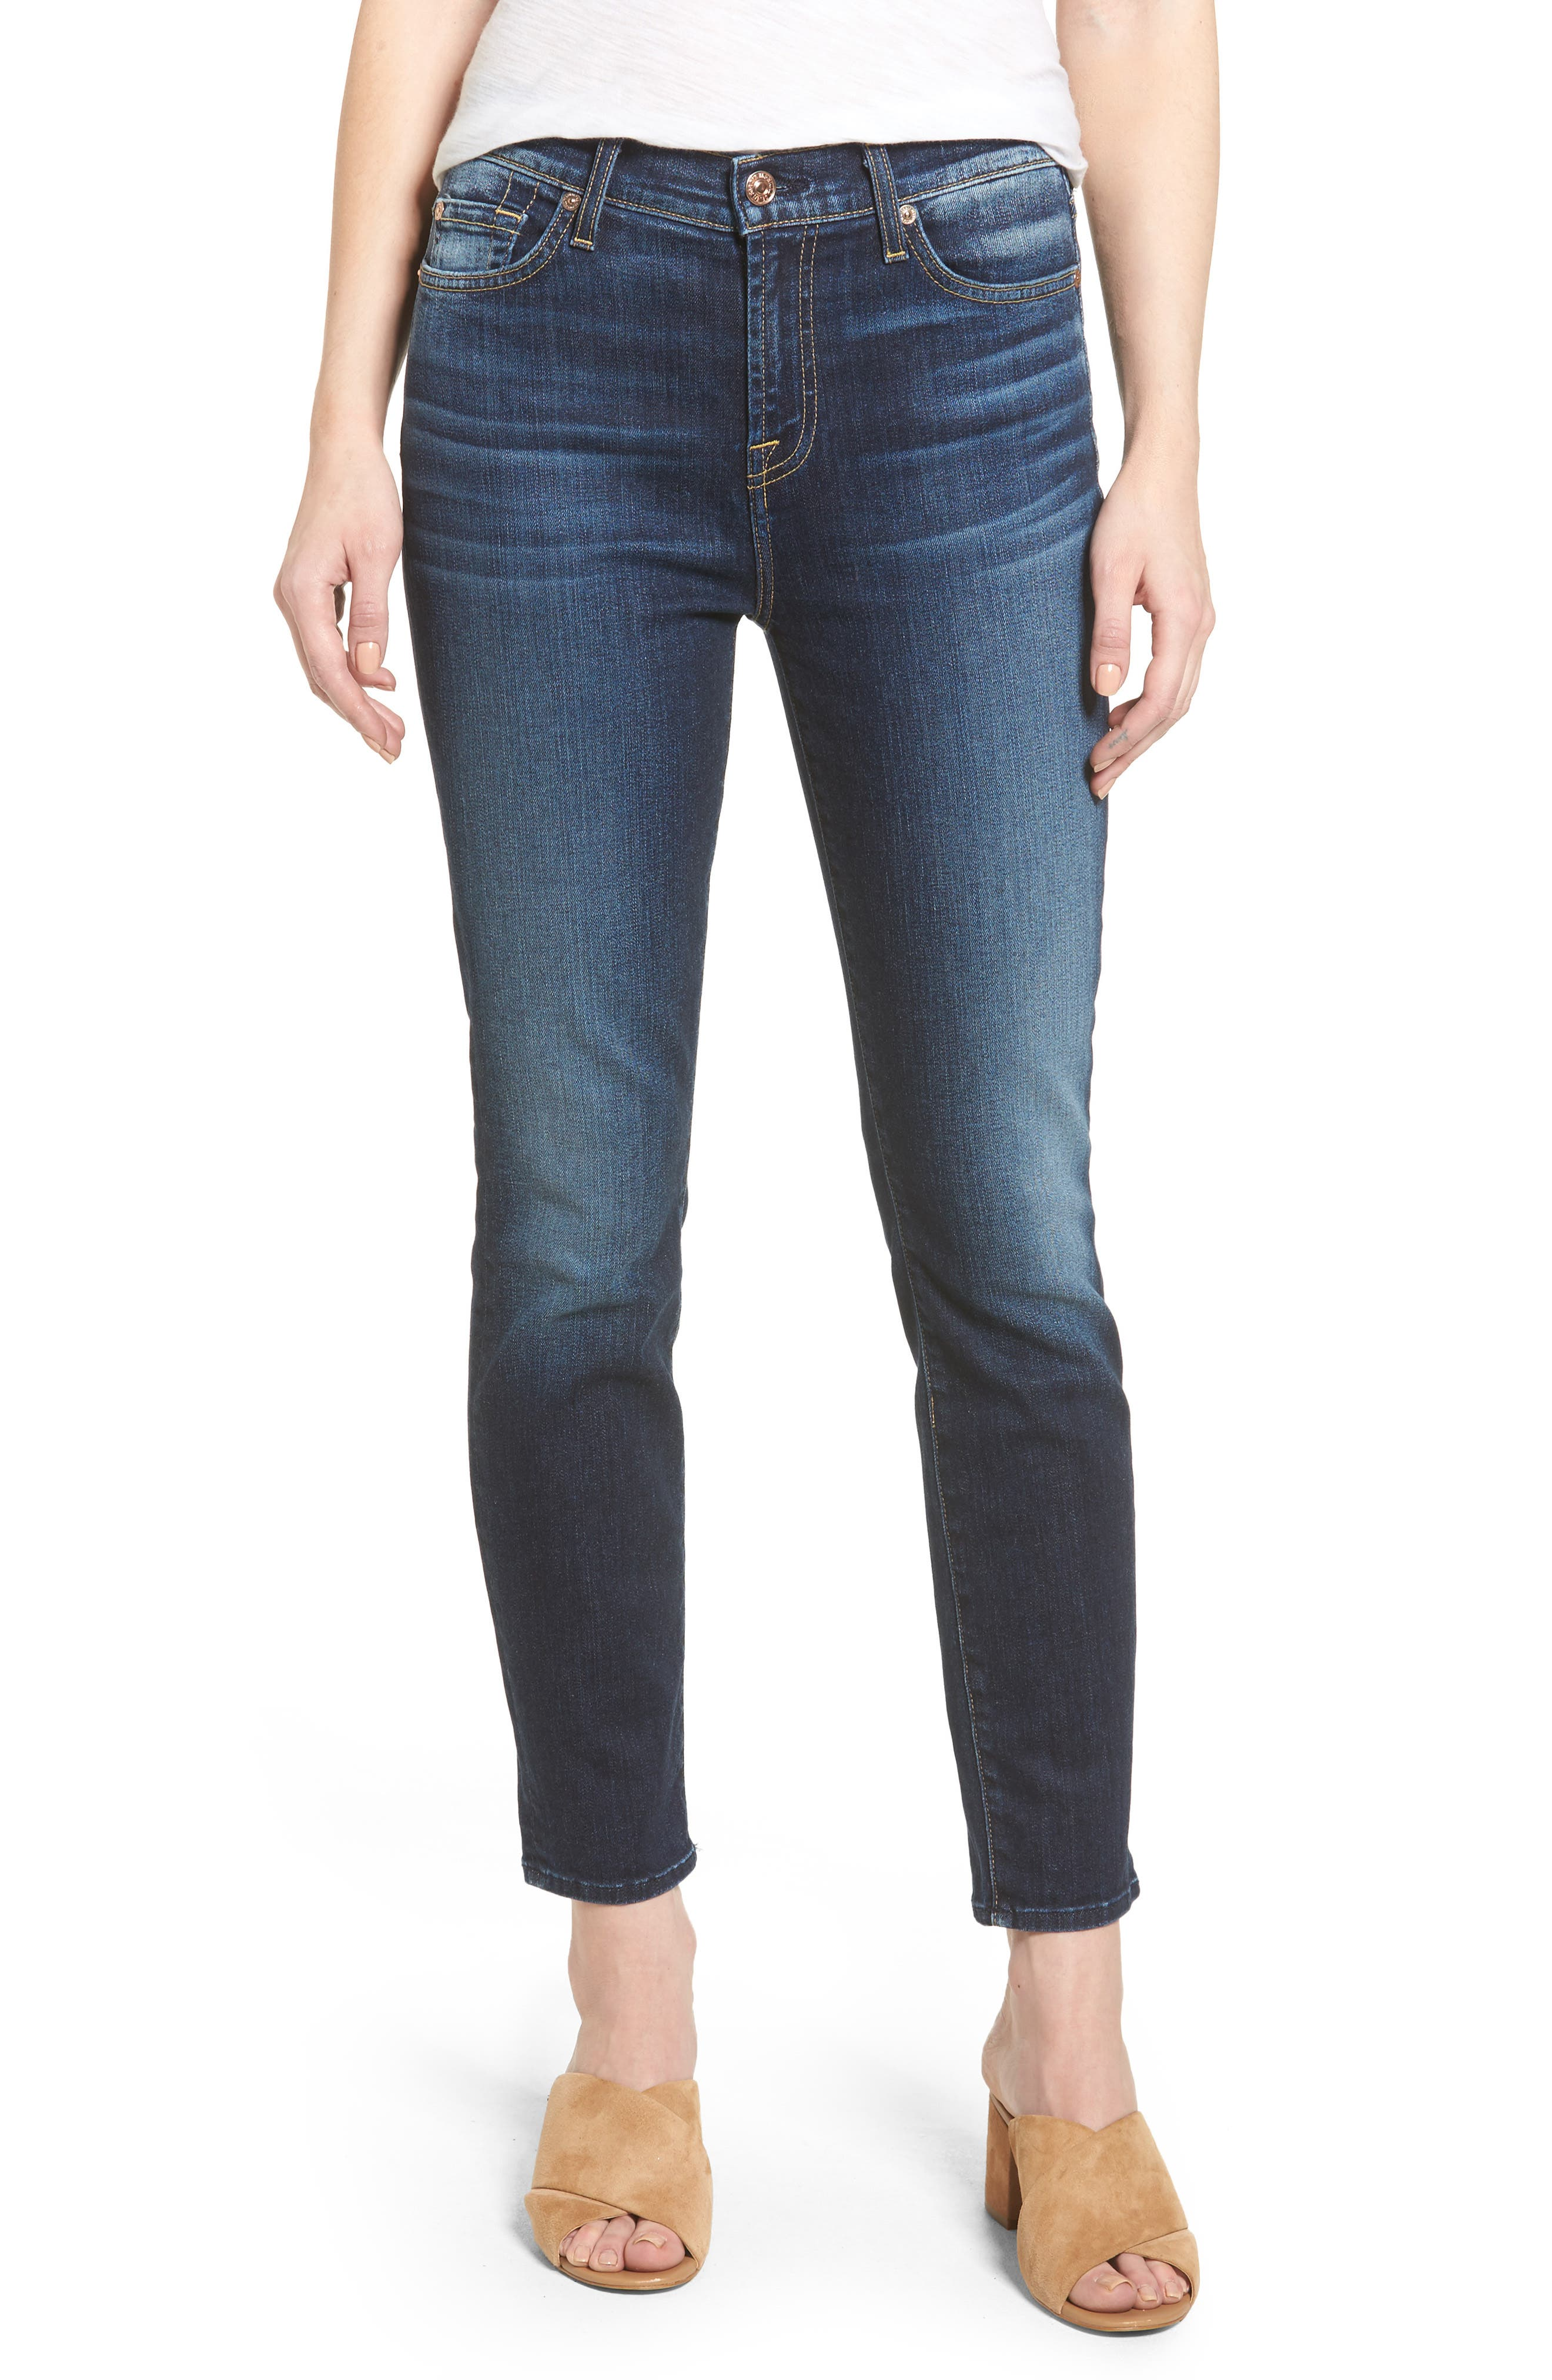 Seven7 Roxanne High Waist Ankle Jeans,                             Main thumbnail 1, color,                             Aggressive Madison Ave